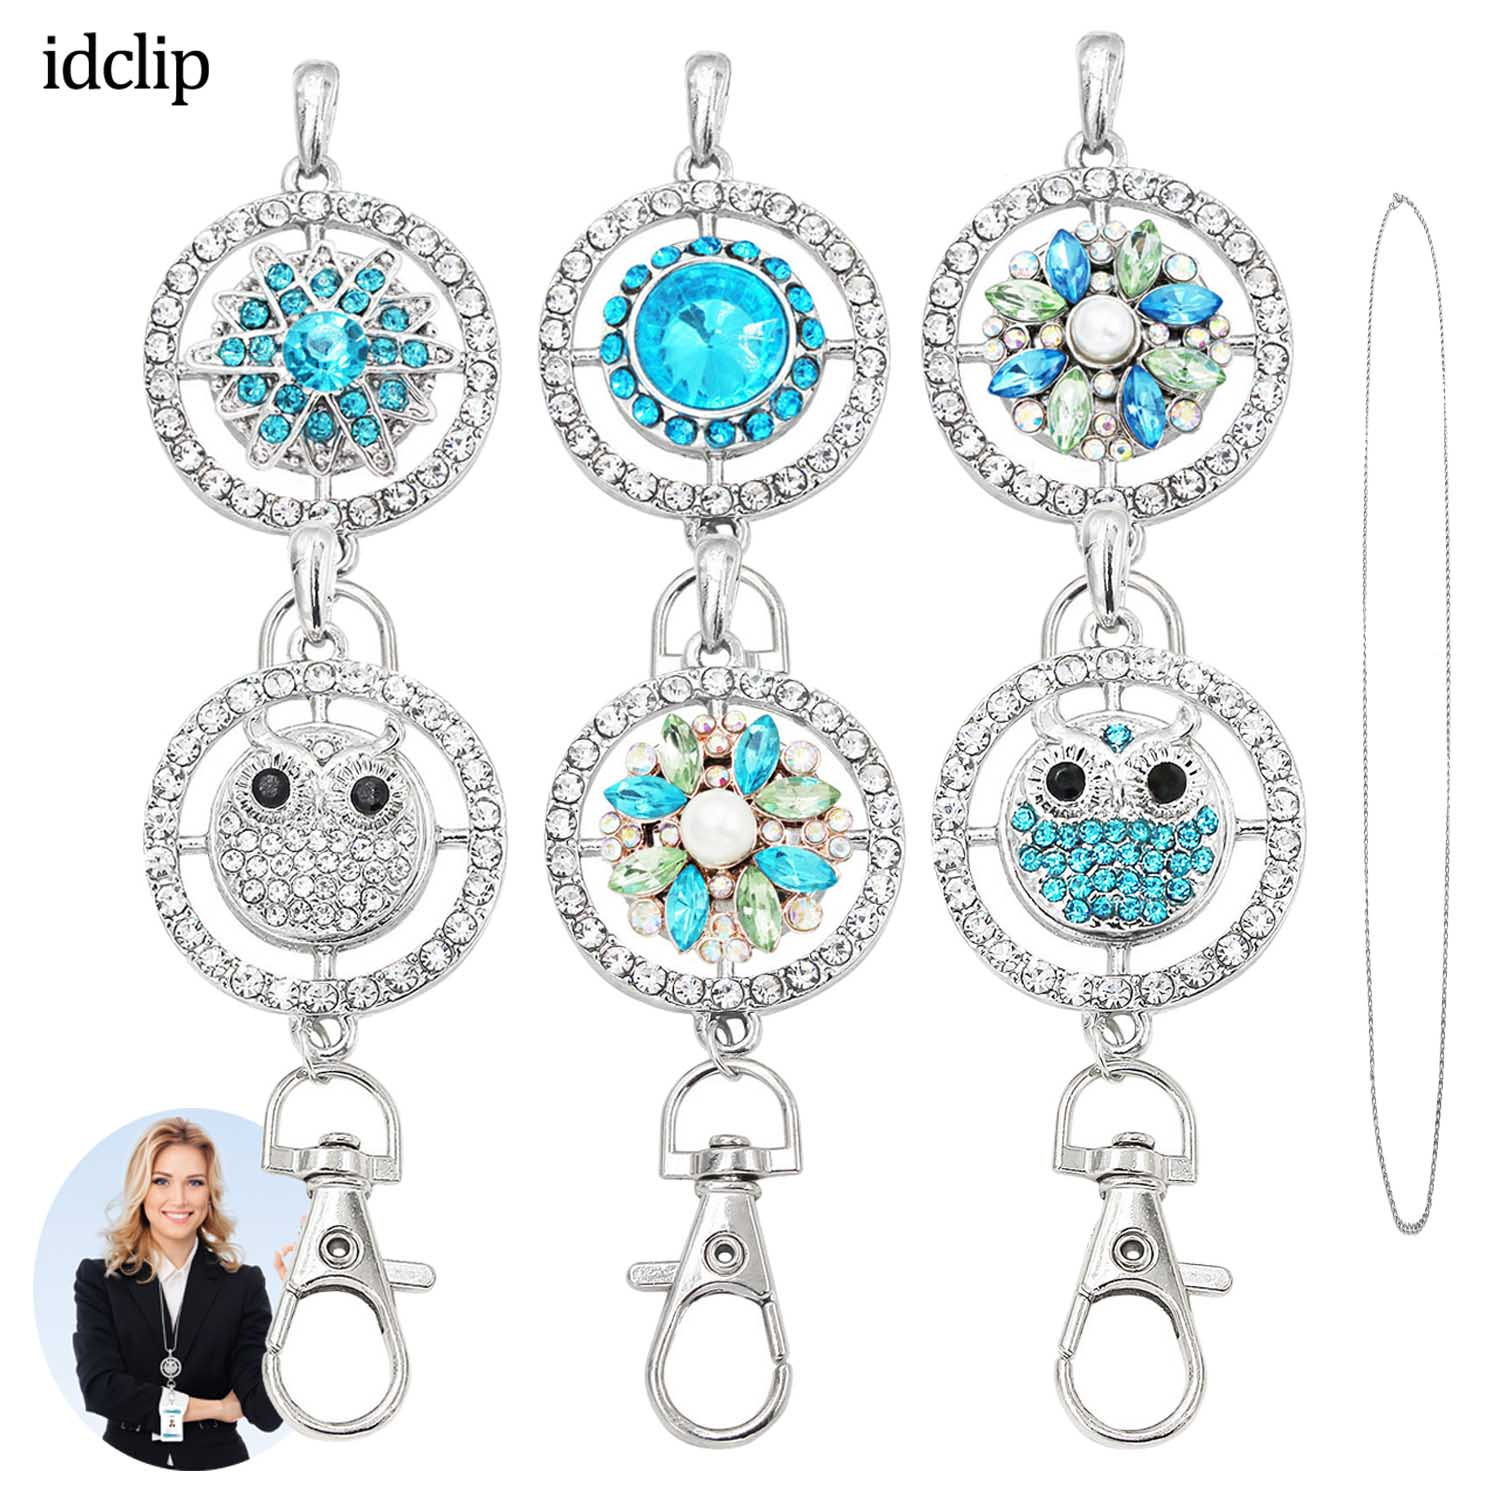 idclip Lanyard Holder ID Badge Owl Snap Jewelry Pink Charms Pendant Clip Bling Necklace Womens Office accessories